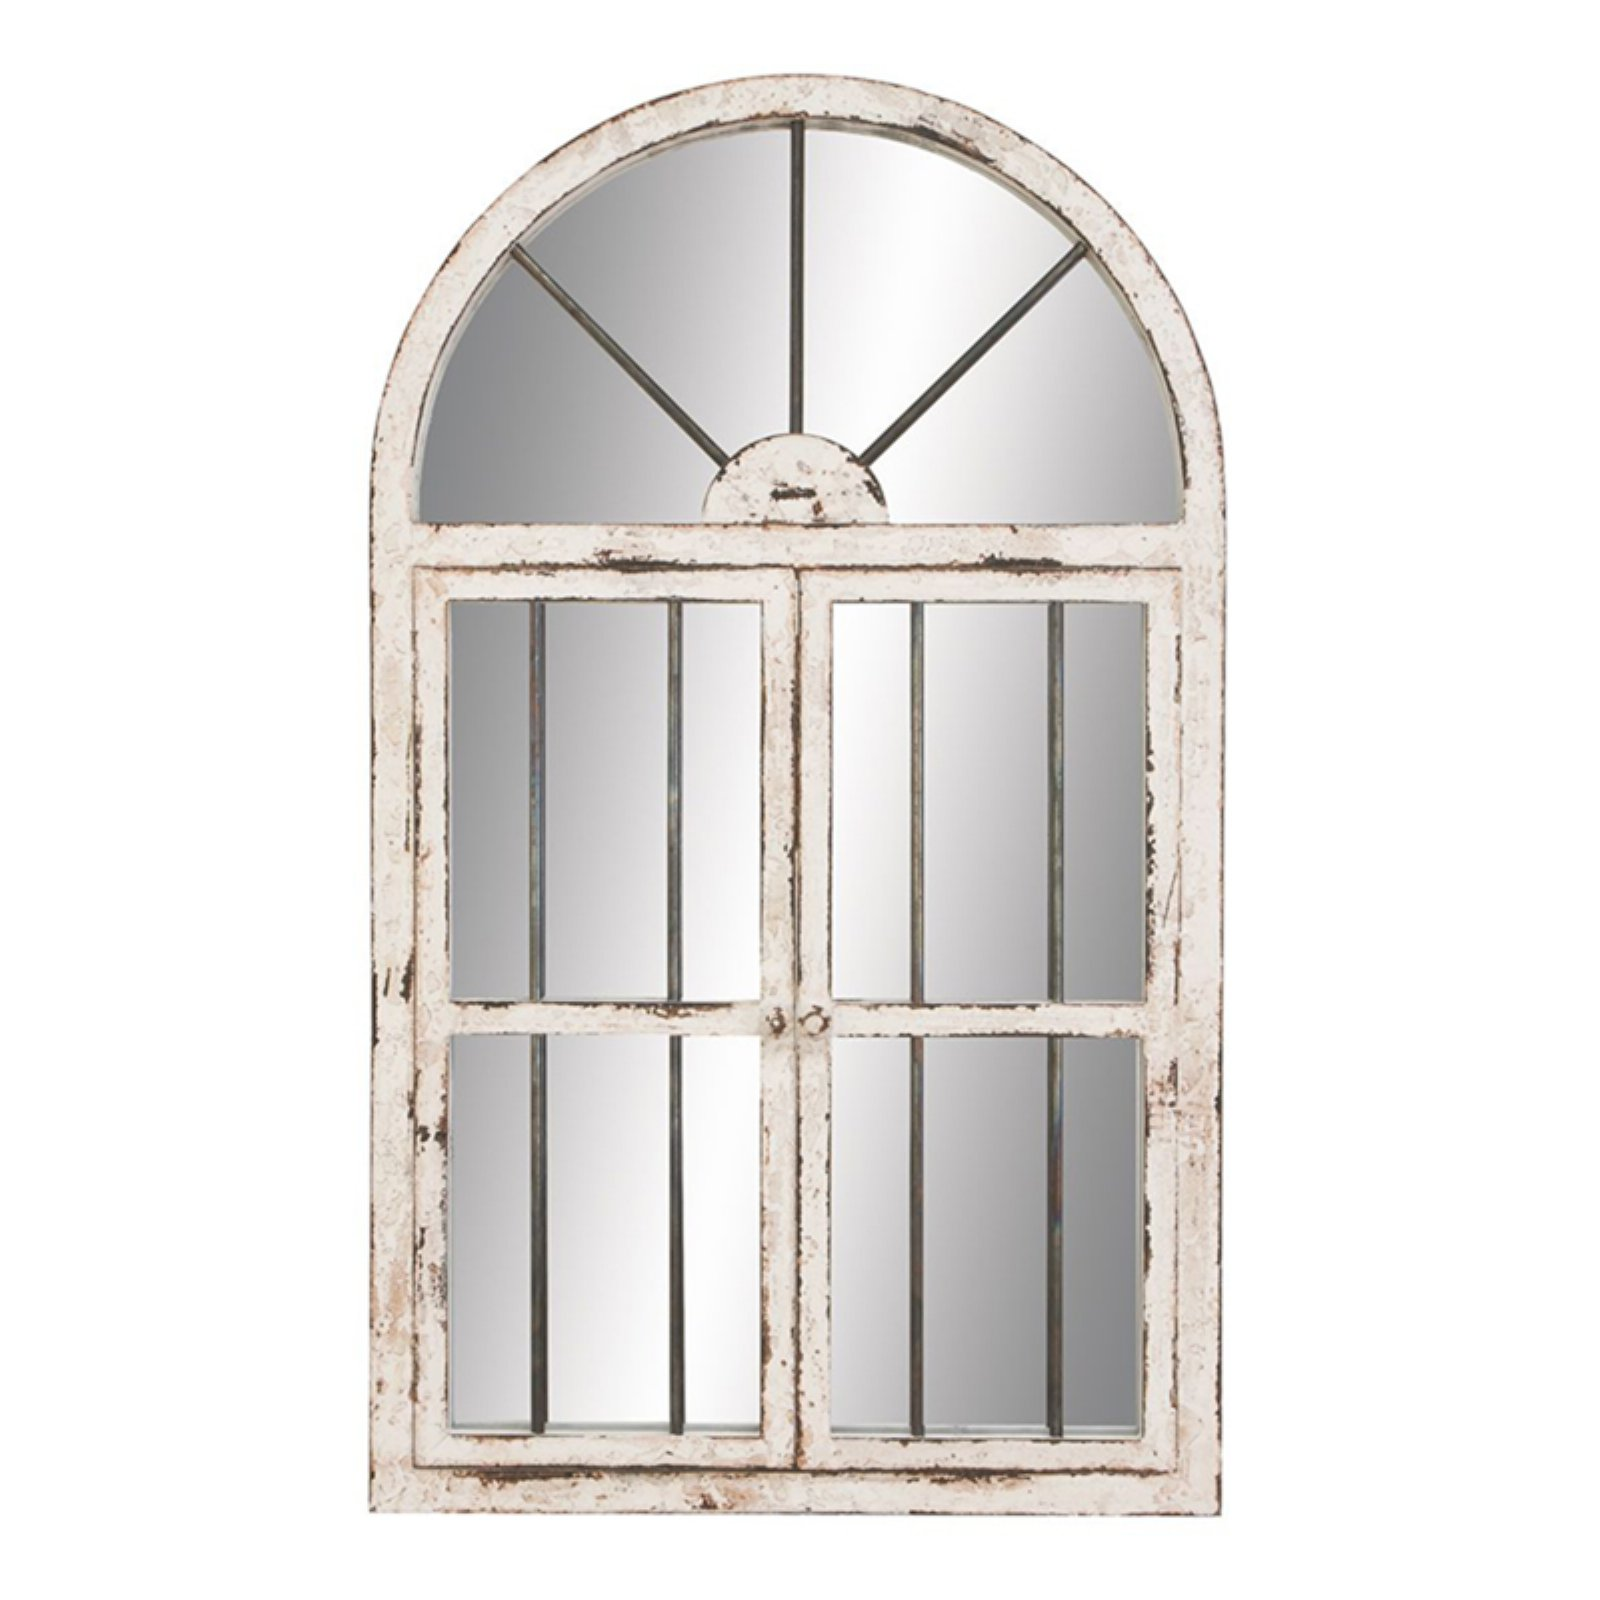 Window Wall Mirror aspire home accents arched window wall mirror - 25w x 42h in